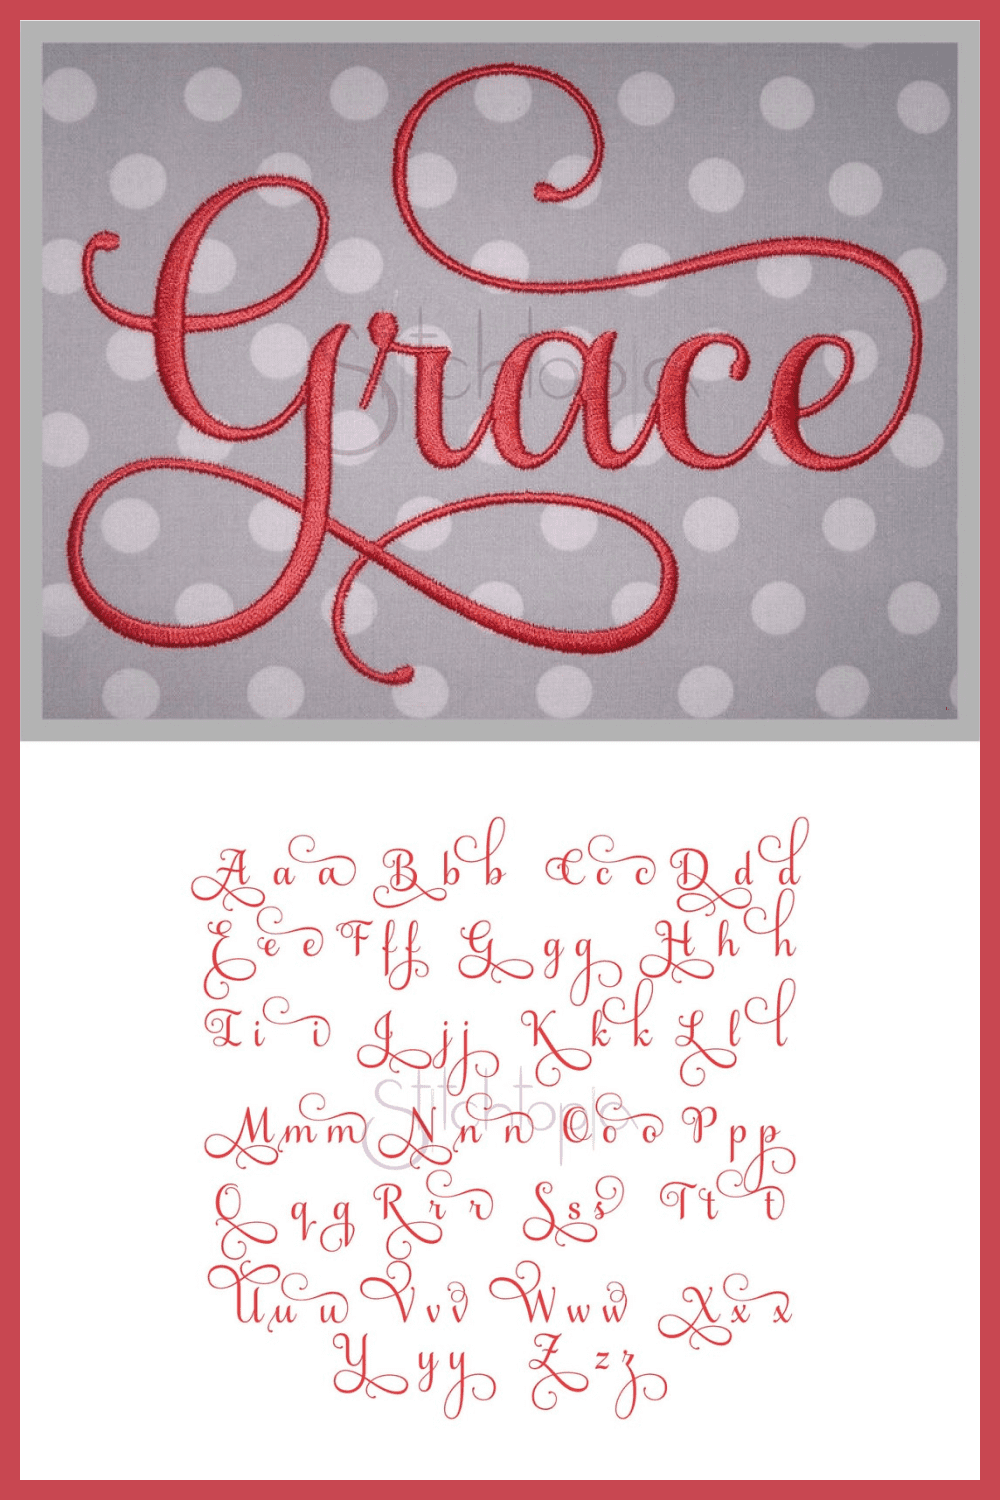 An exquisite and noble font, which is like embroidered with expensive threads.